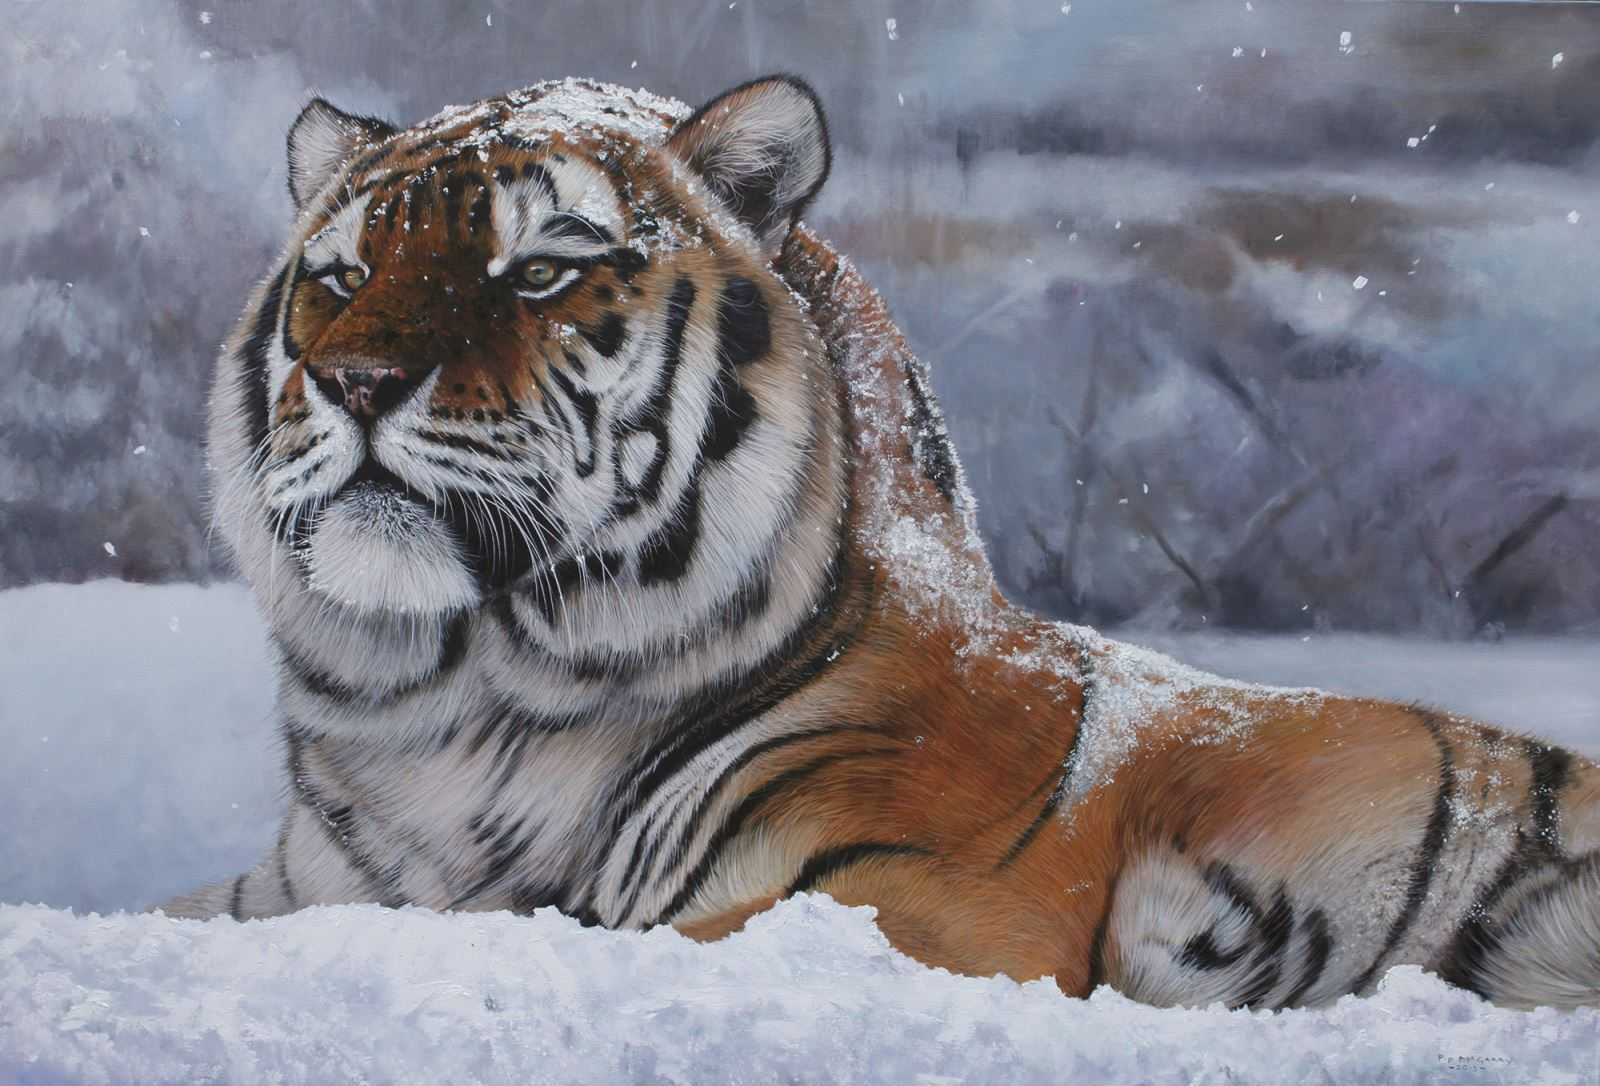 Wildlife artist Pip McGarry roars into Odiham for another sell-out ...